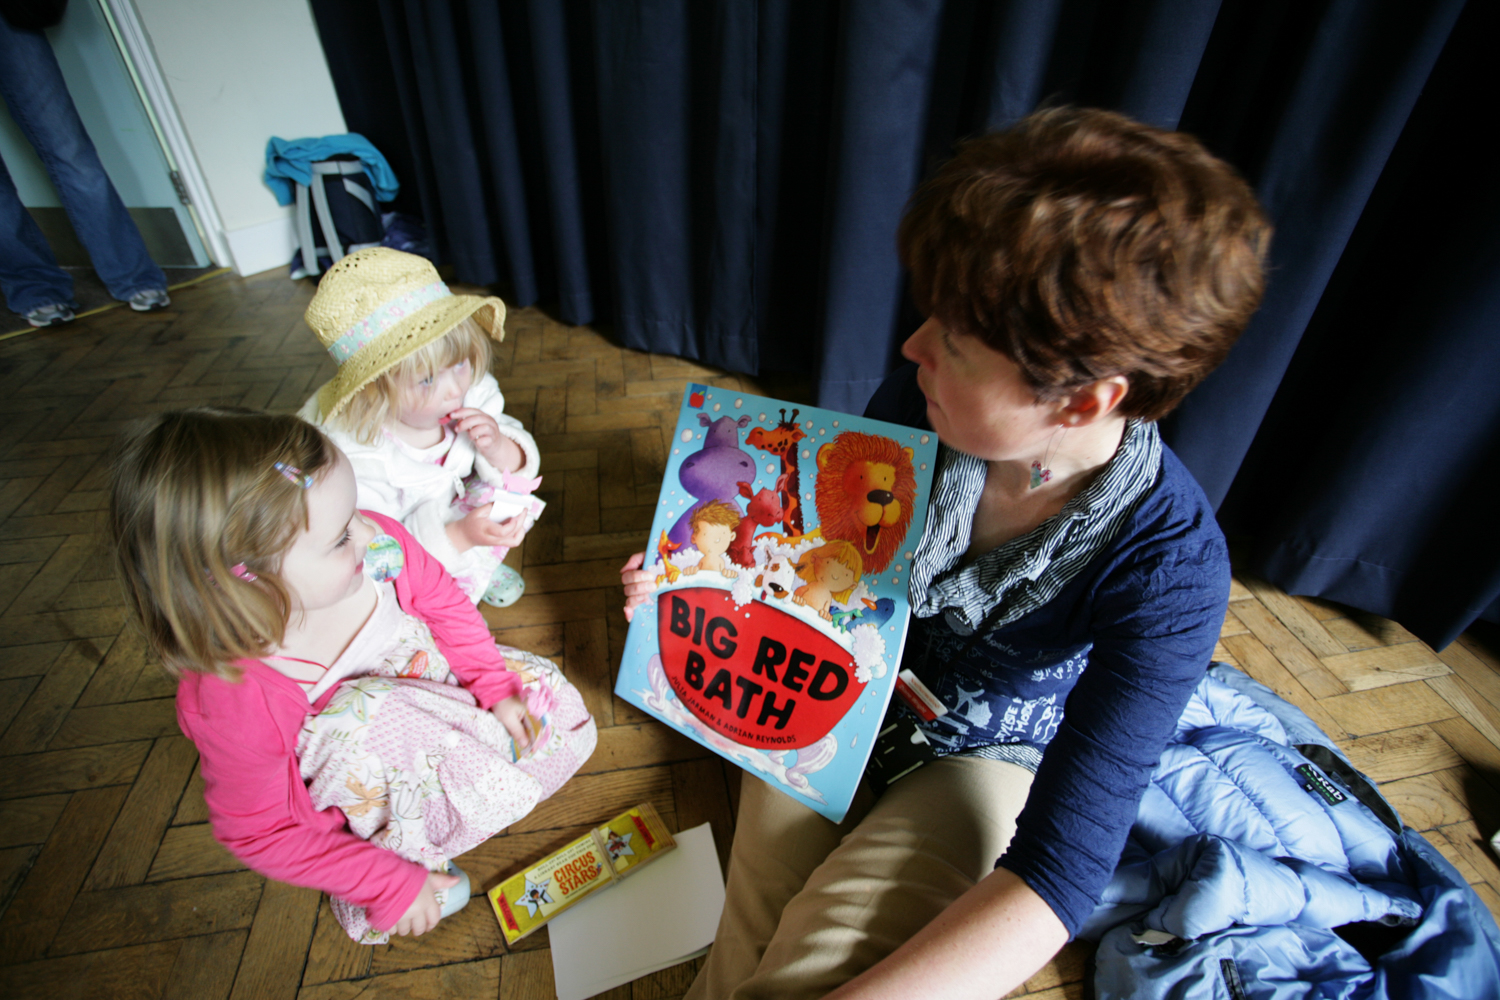 PICTORIAL_BERWICK_bookstart-heatherslaw-funded-day-out-educational-extended-services-lorna-chappell-organised-fire-police-9808.jpg